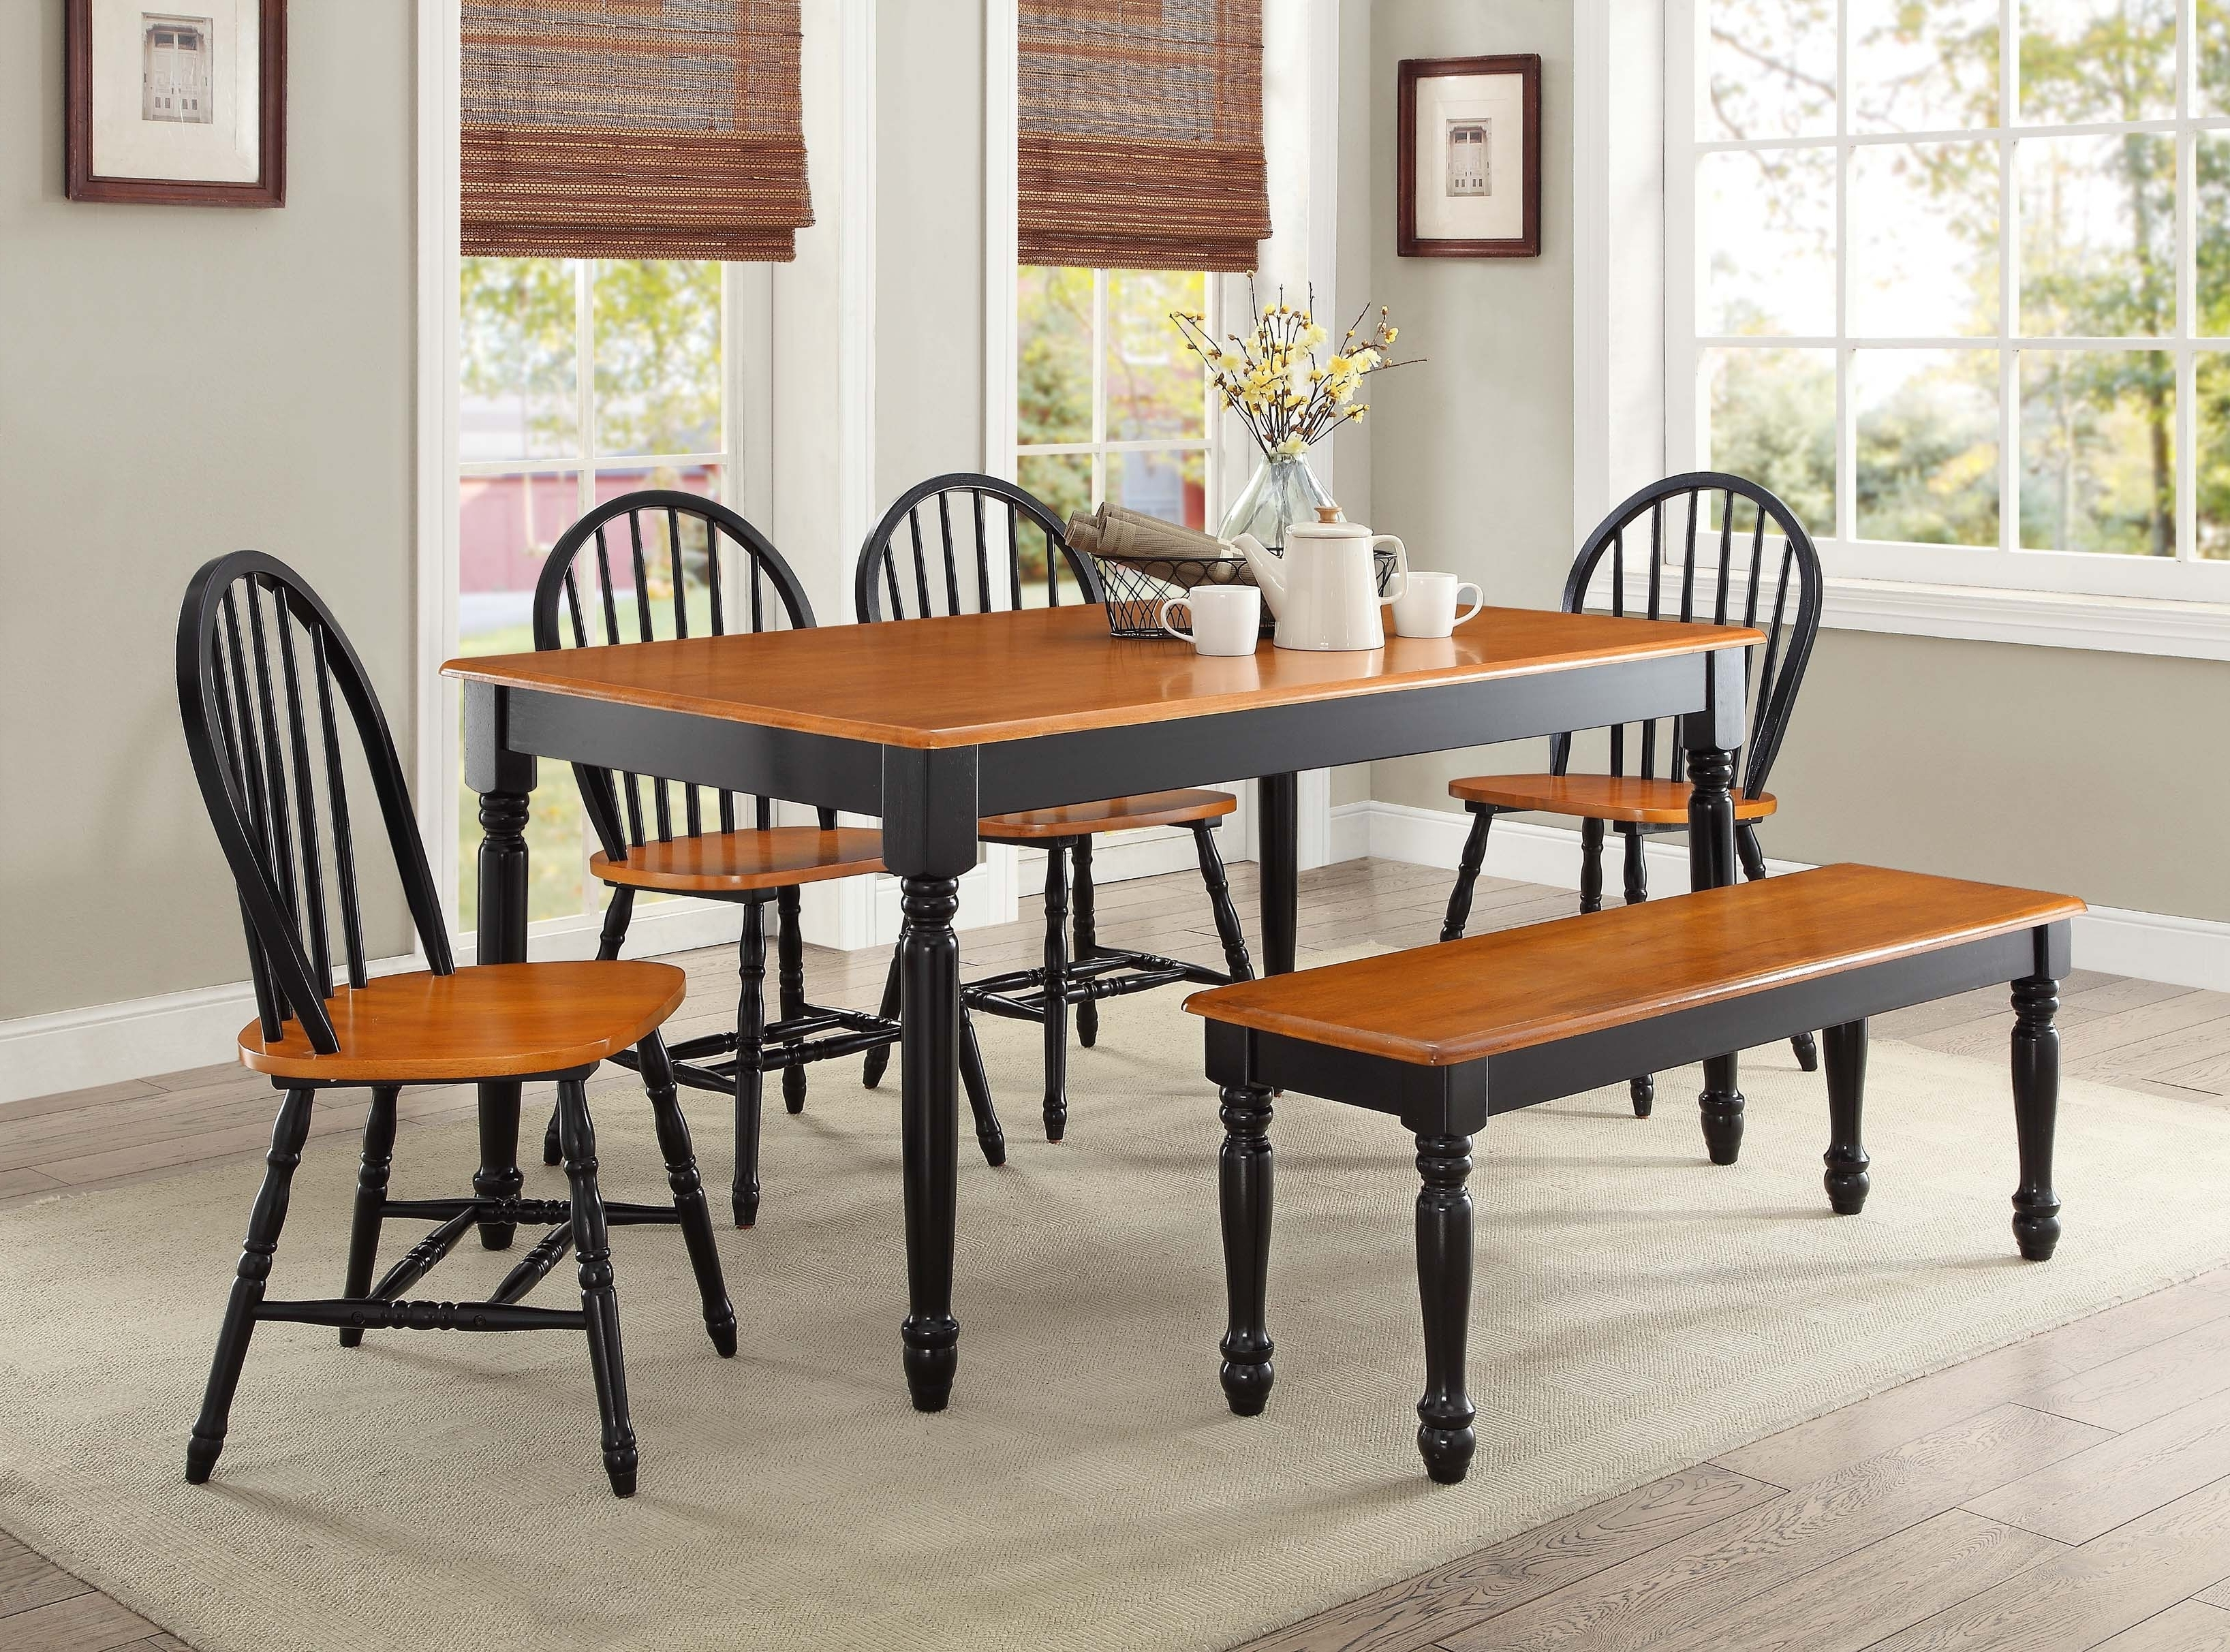 Round 6 Person Dining Tables With Regard To Most Popular 30 Lovely 6 Person Dining Table Size – Welovedandelion (View 20 of 25)